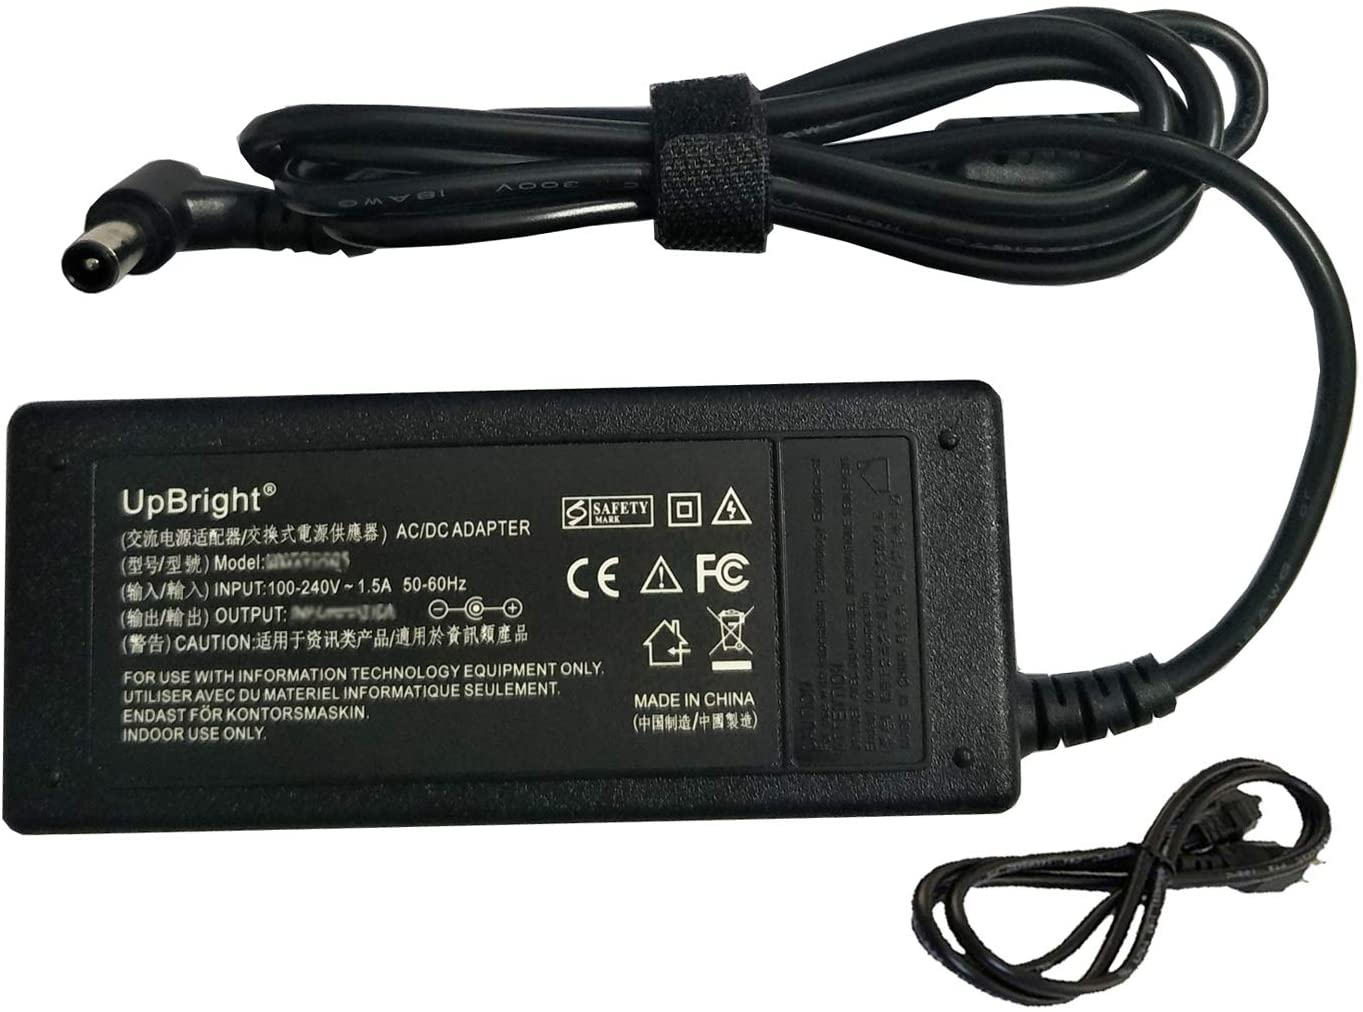 UpBright New 24V AC/DC Adapter Compatible with Samsung HW-JM37C HW-JM37 HW-KM45C HW-JM47 HWJM47 HW-KM57C HW-KM57 HW-KM57C/ZA C1140057 HWKM57C HWKM57 Series AirTrack Sound Bar SoundBar Power Supply